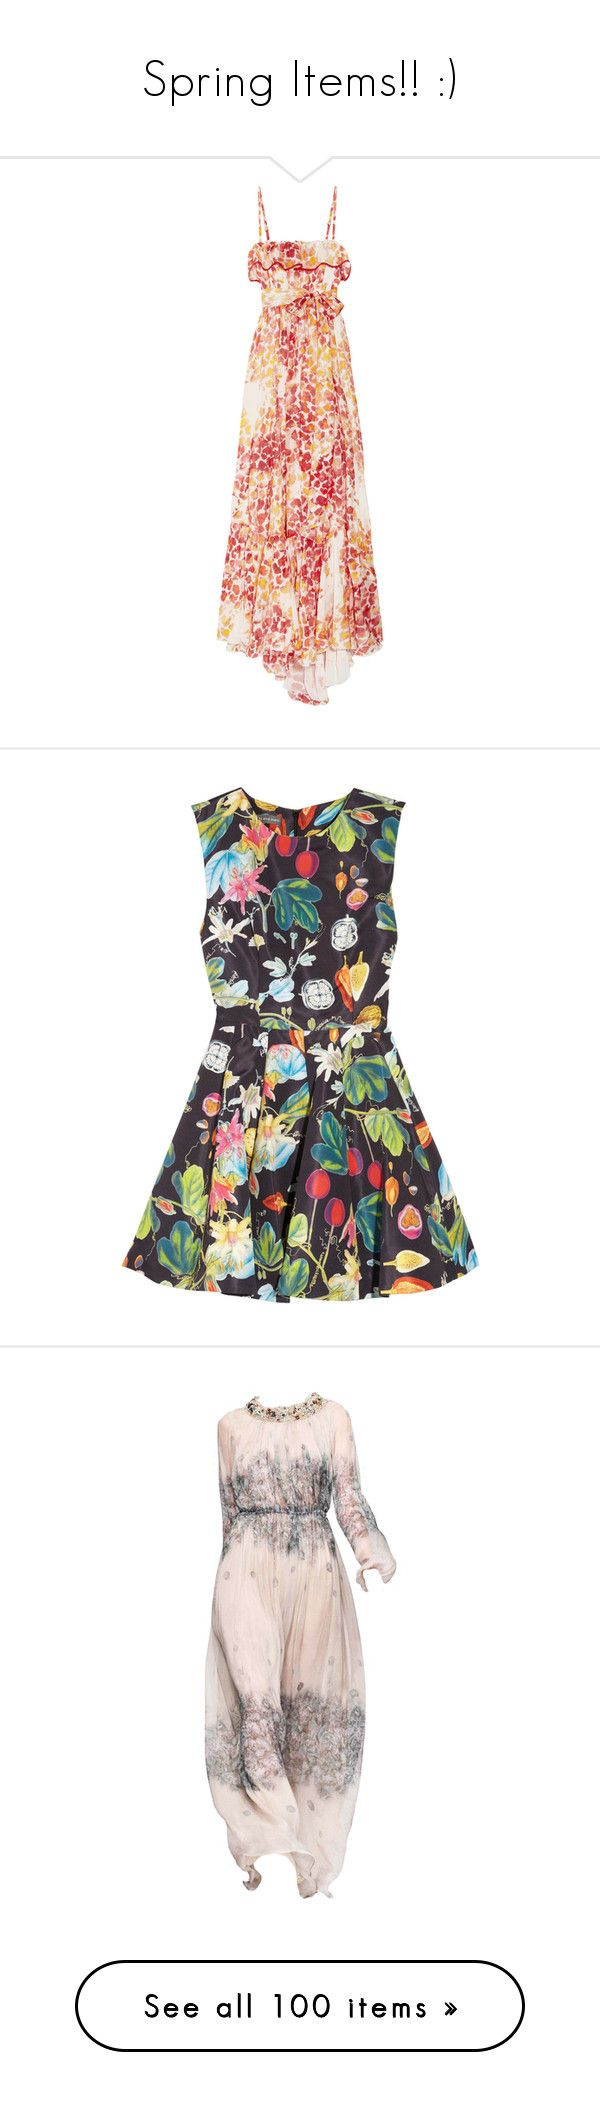 """""""Spring Items!! :)"""" by vansant ❤ liked on Polyvore featuring dresses, gowns, maxi dress, vestidos, tomato red, colorful dresses, multi colored maxi dresses, loose dresses, ruffle dress and multi color maxi dress"""